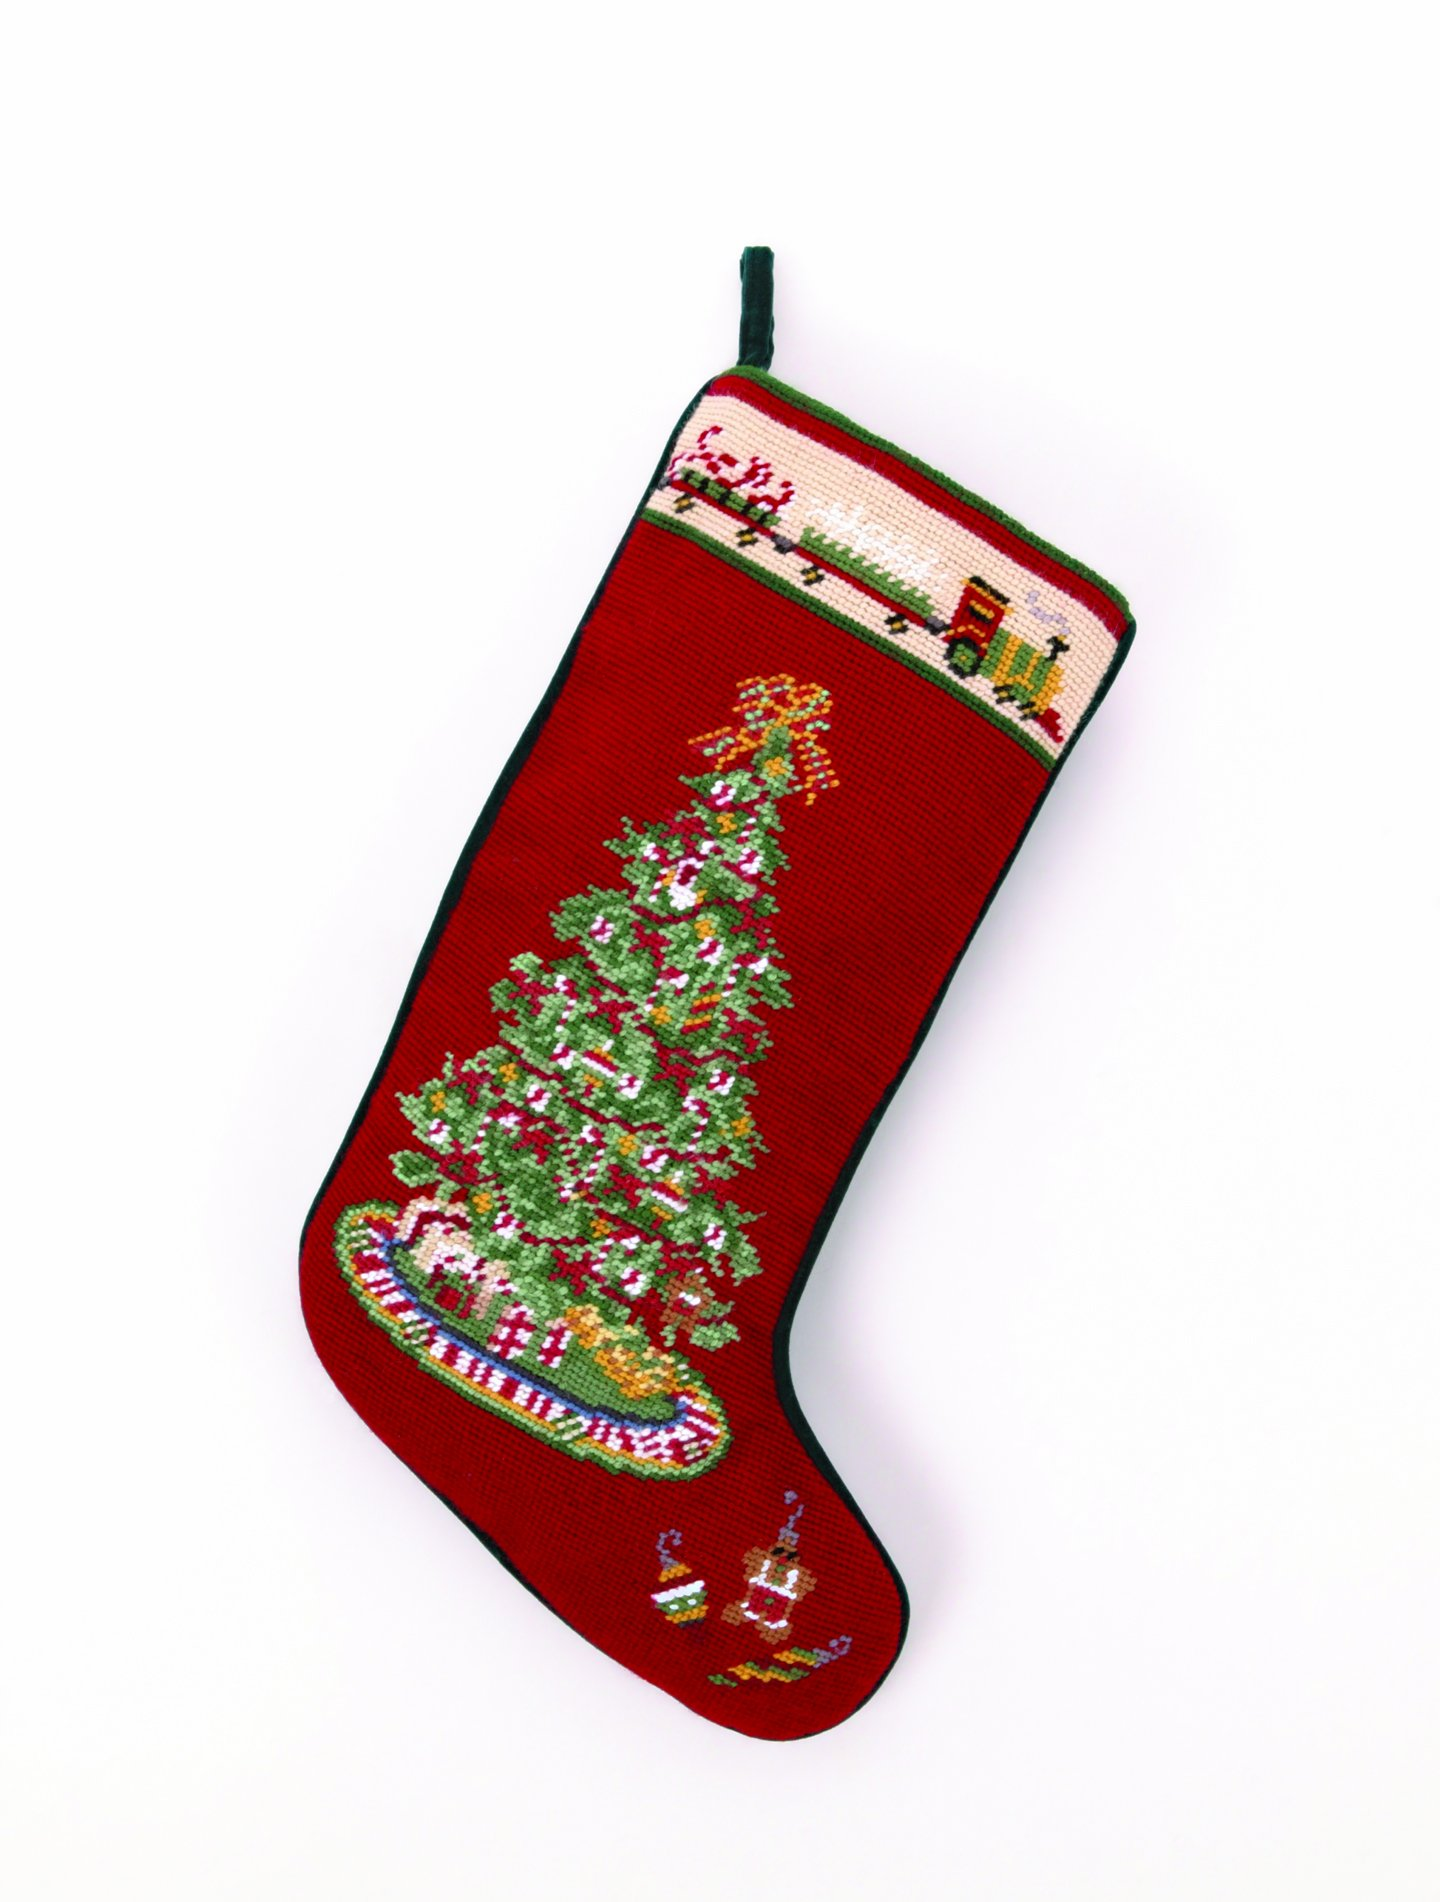 Christmas Tree with Toy Train Christmas Stocking, Wool Needlepoint, 11 Inch X 18 Inch